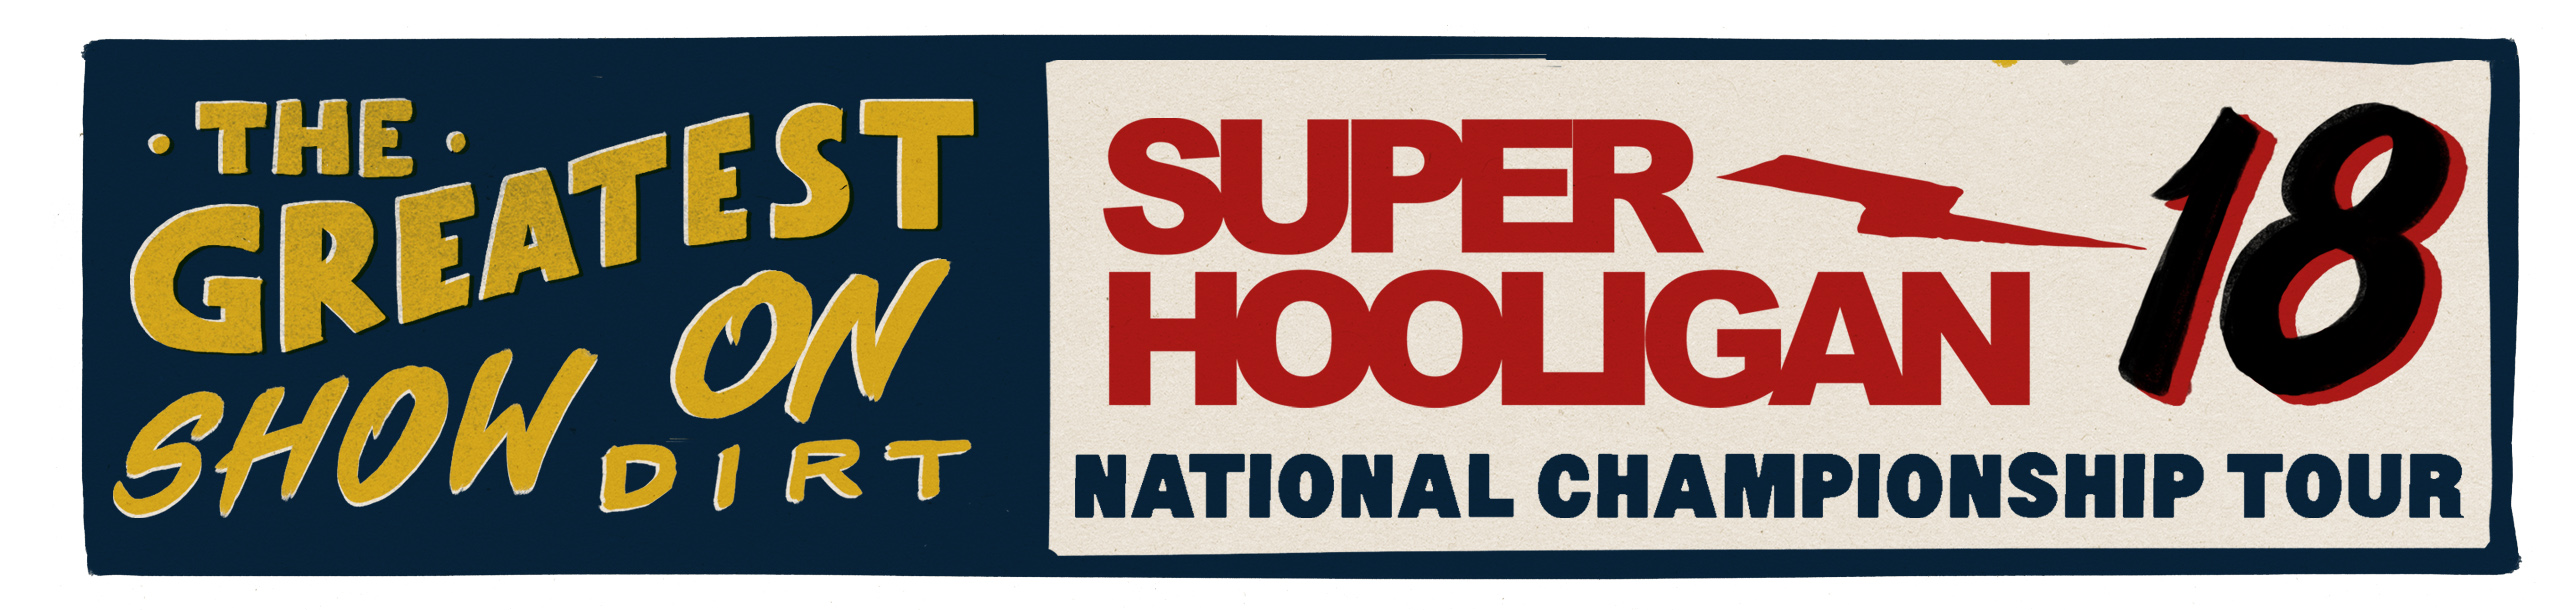 2018 Super Hooligan National Championship